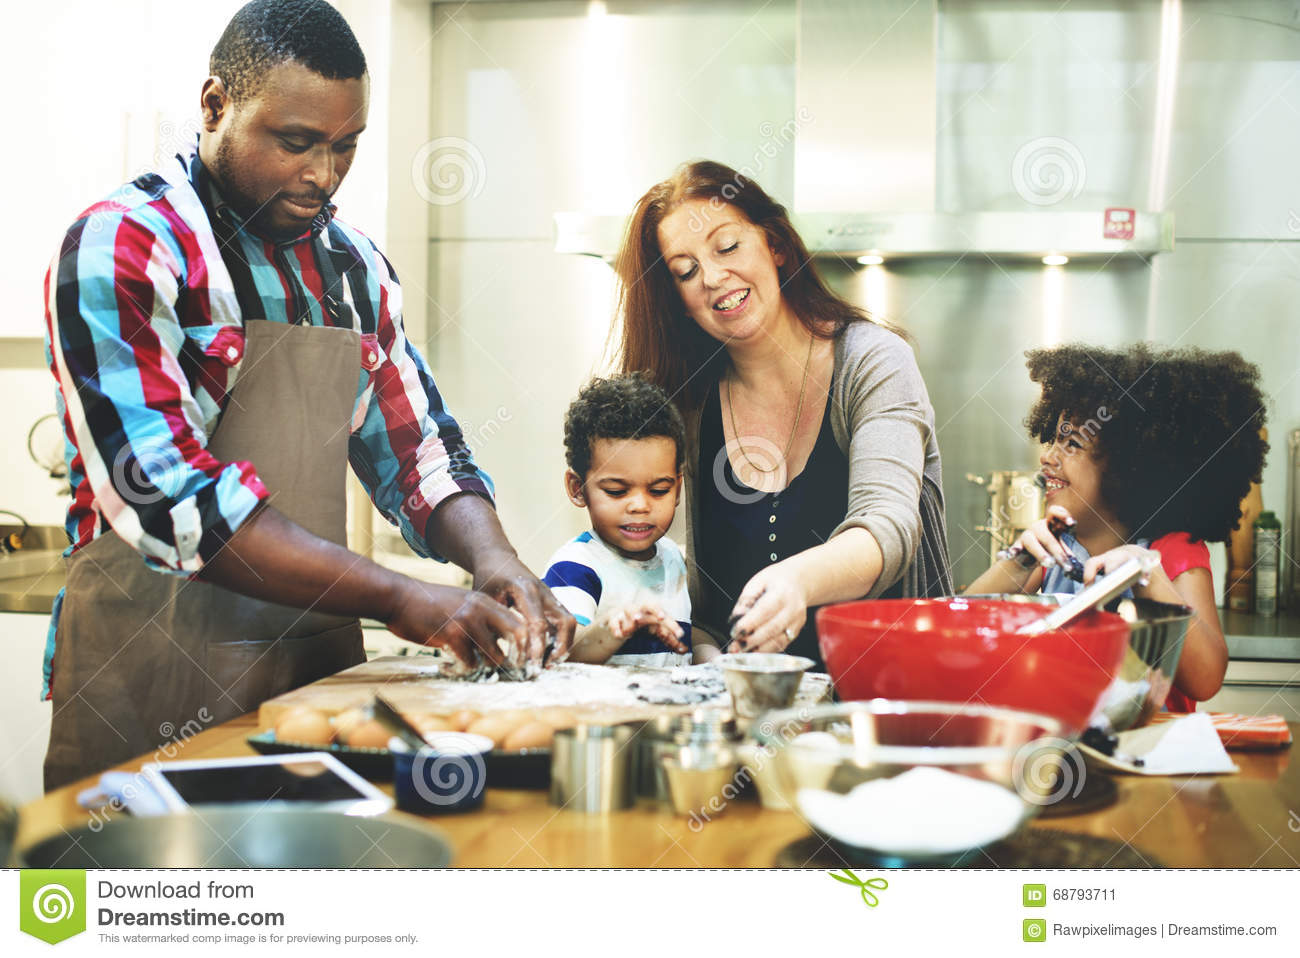 Family cooking kitchen - Family Cooking Kitchen Food Togetherness Concept Stock Photo